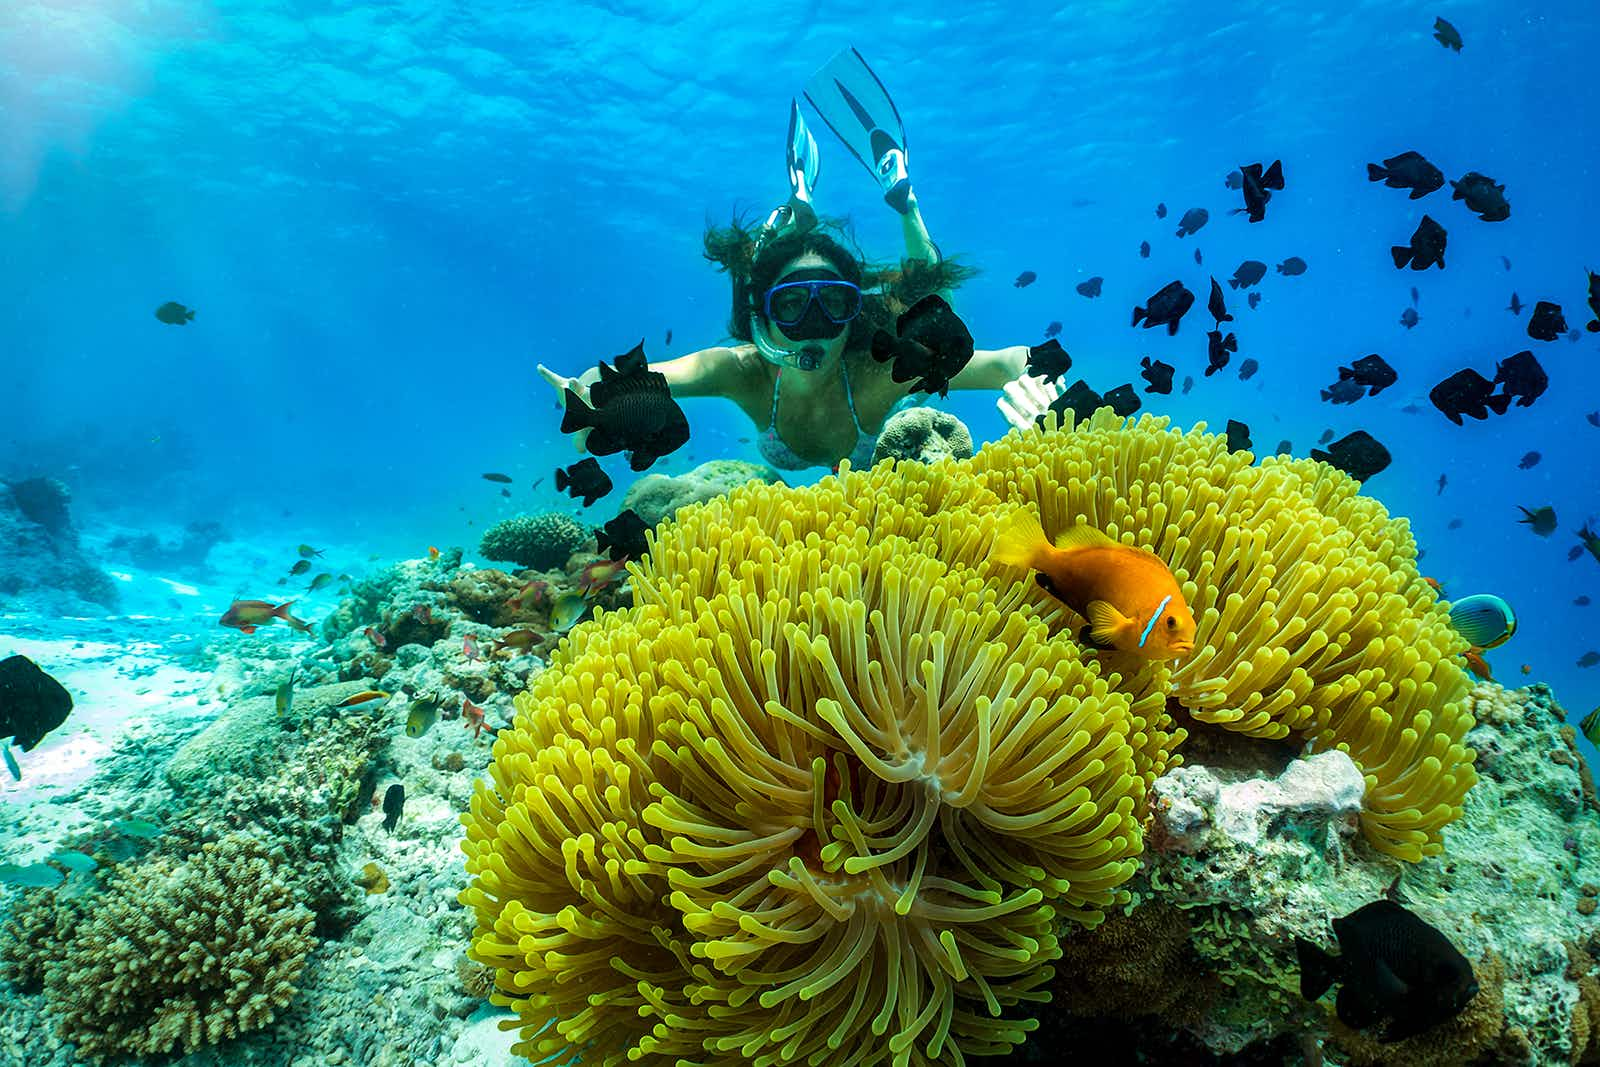 Coral reefs are fragile ecosystems – do your part by wearing environmentally-friendly sunscreen © Sven Hansche / Shutterstock